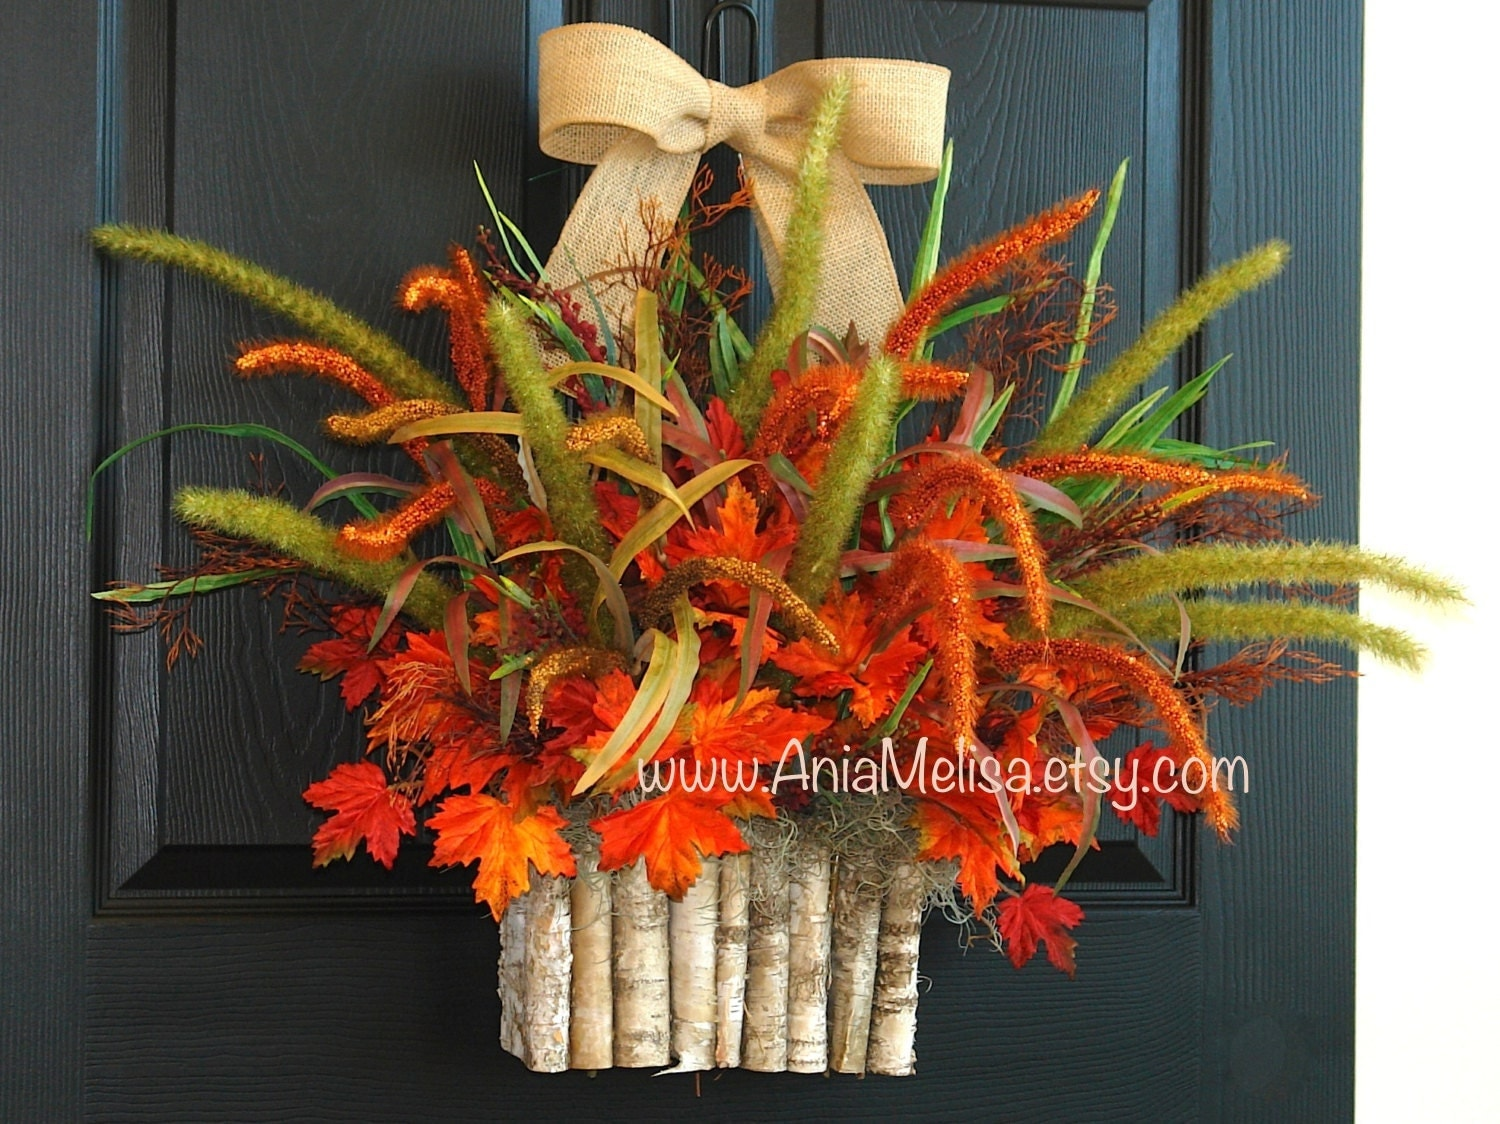 Fall Wreath Autumn Wreaths For Front Door Wreaths Home: fall autumn door wreaths